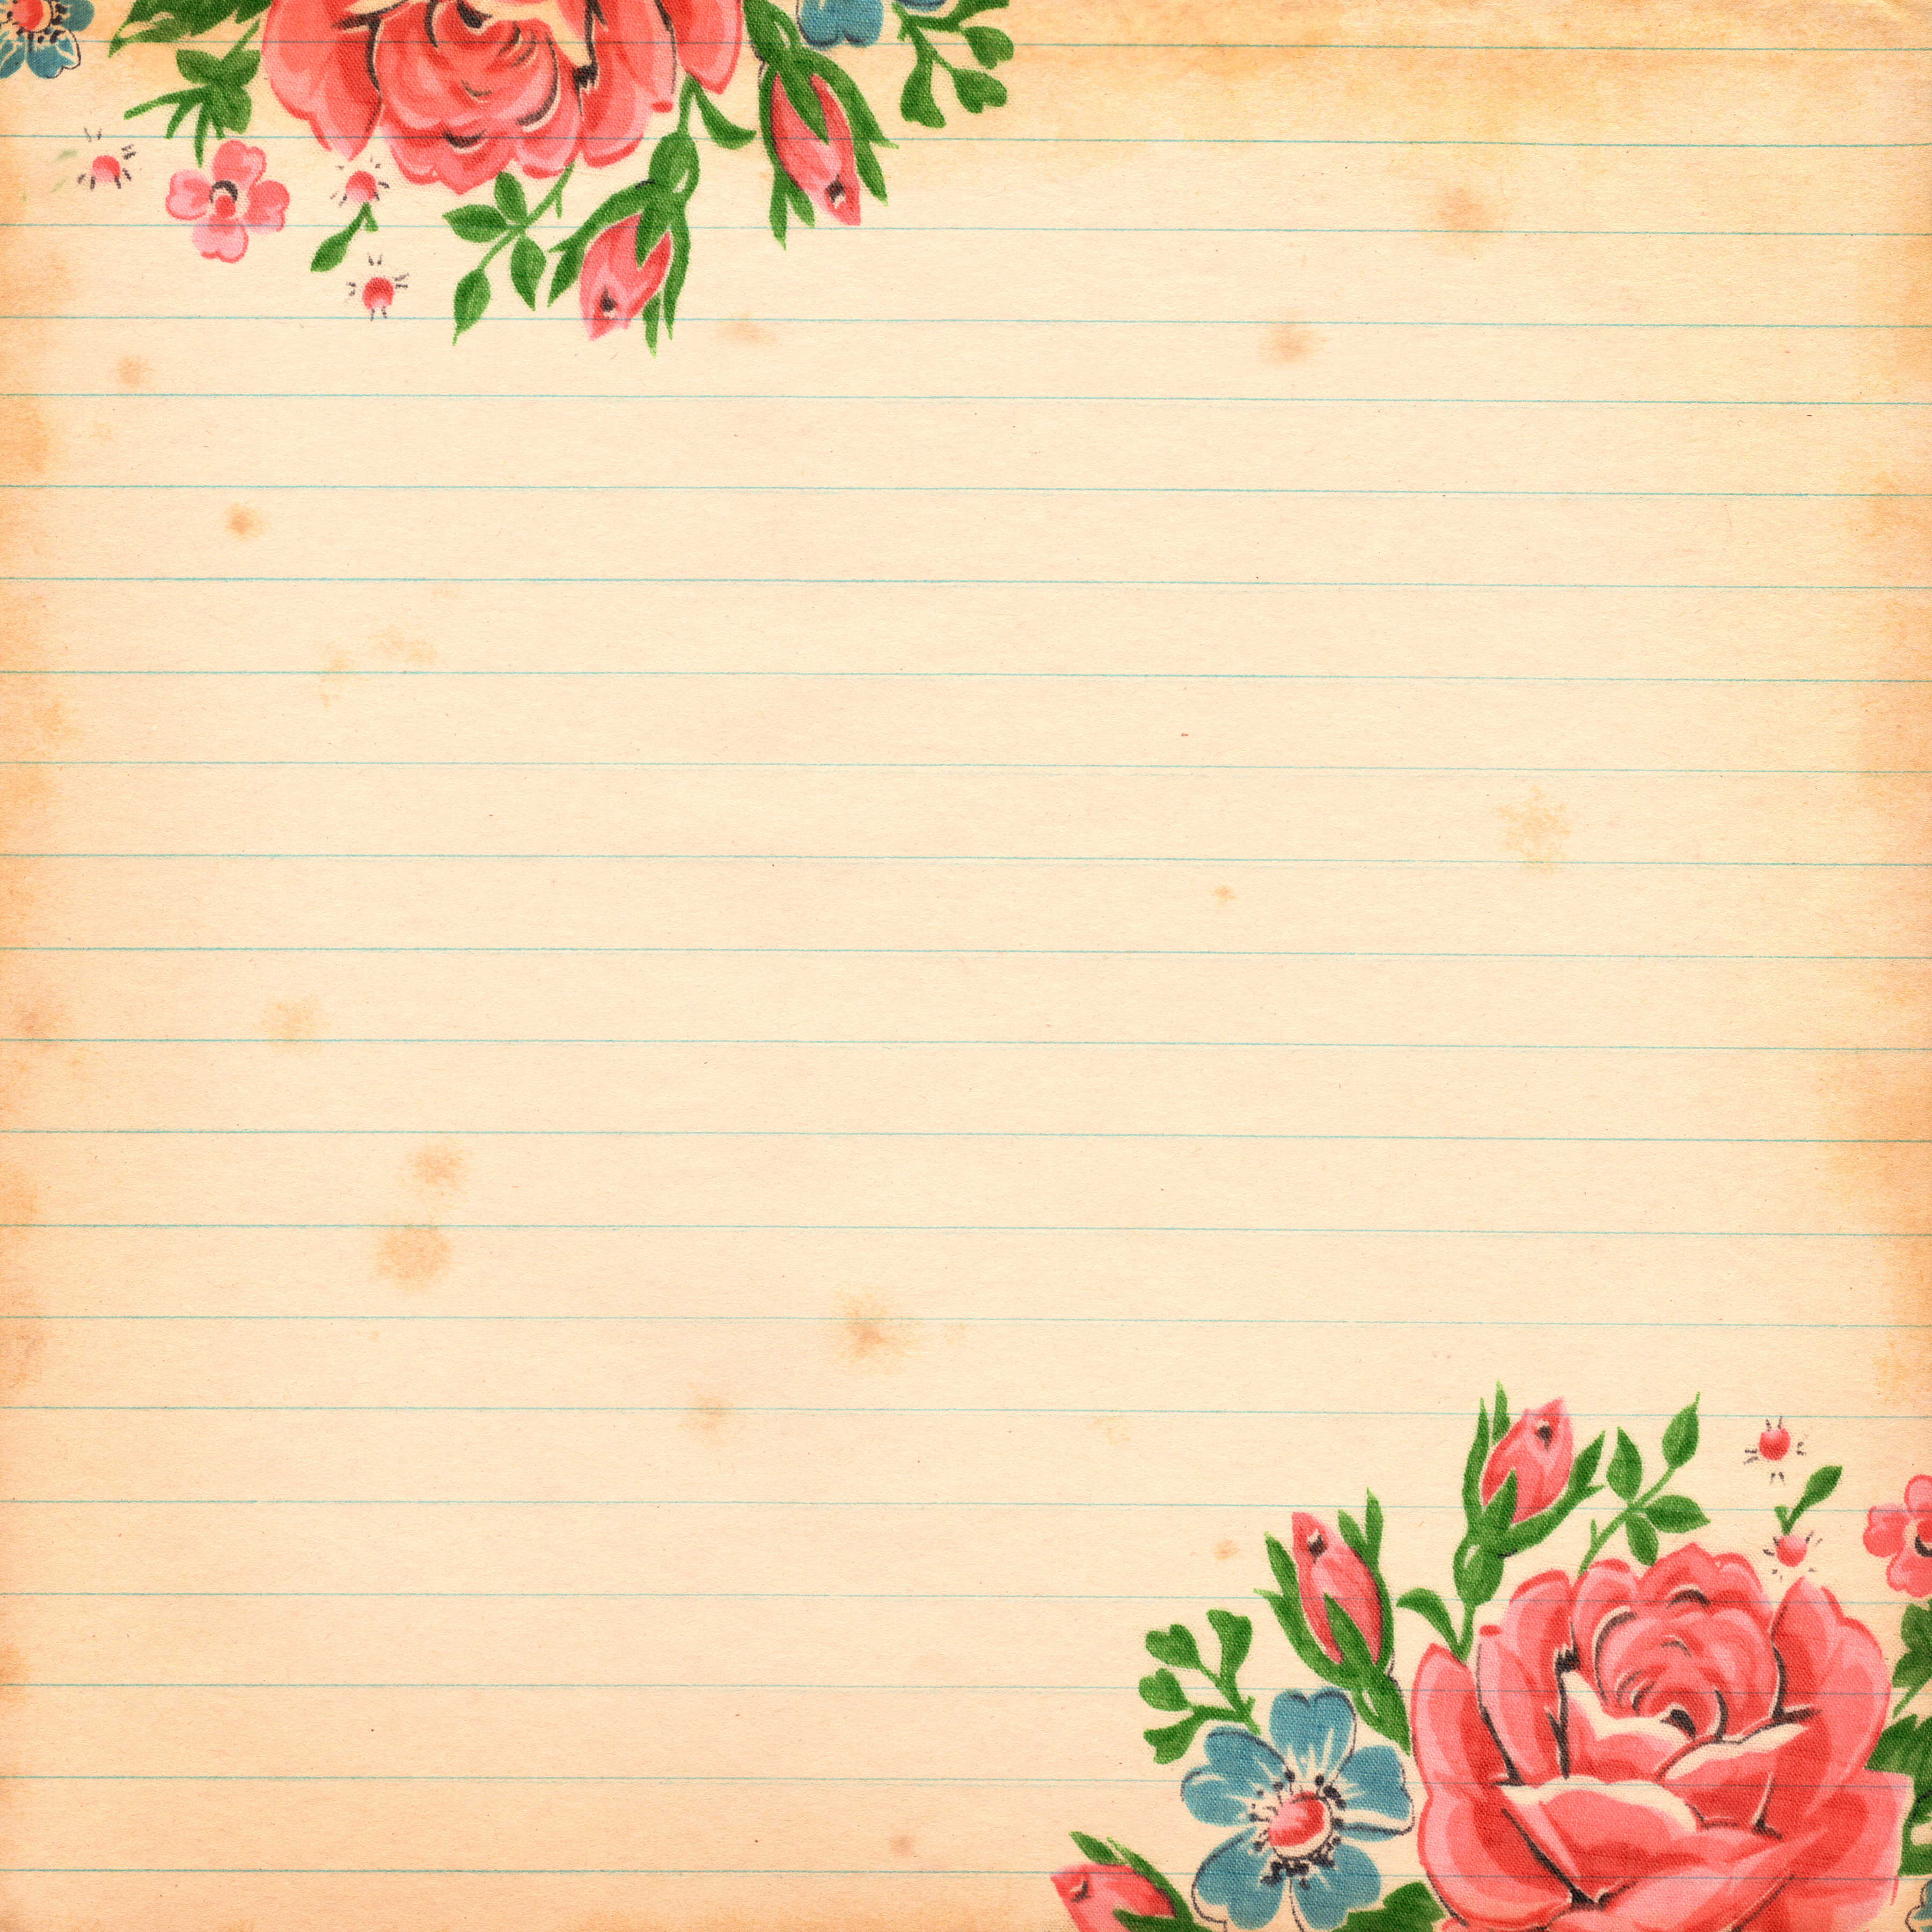 Digital Scrapbook Paper Commercial Use OK   Pretty Things 3600x3600